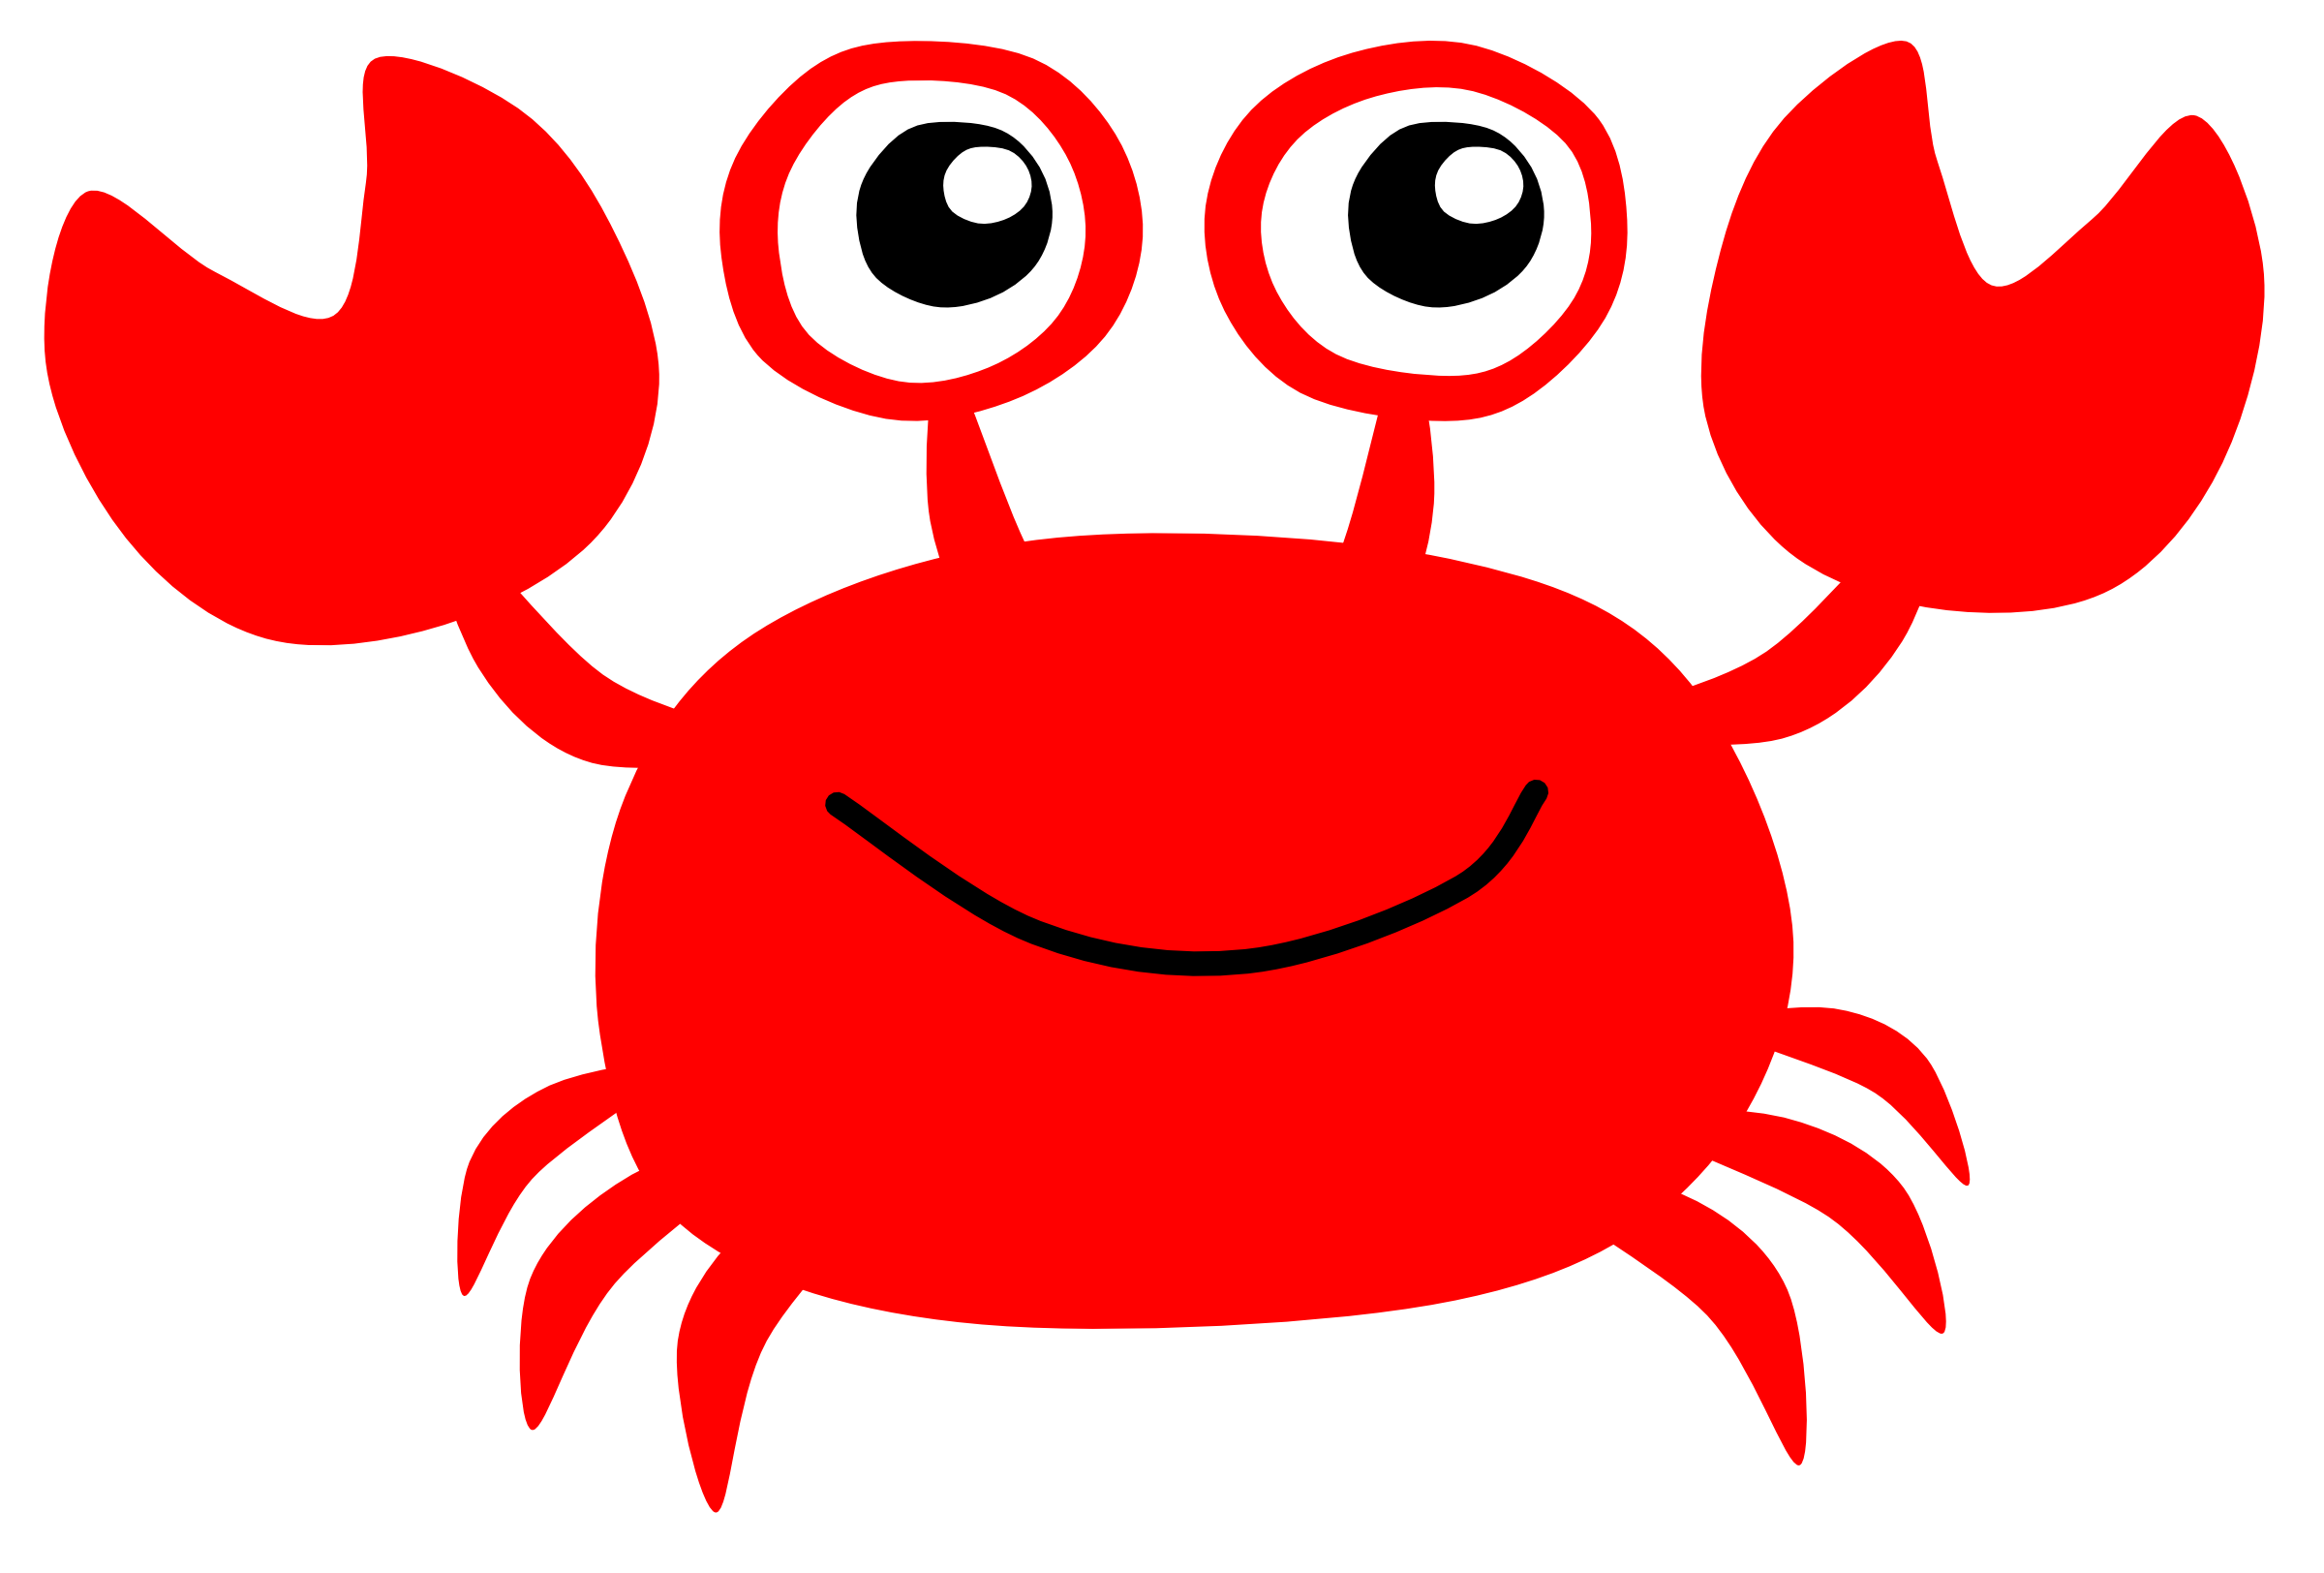 Crab clipart #11, Download drawings